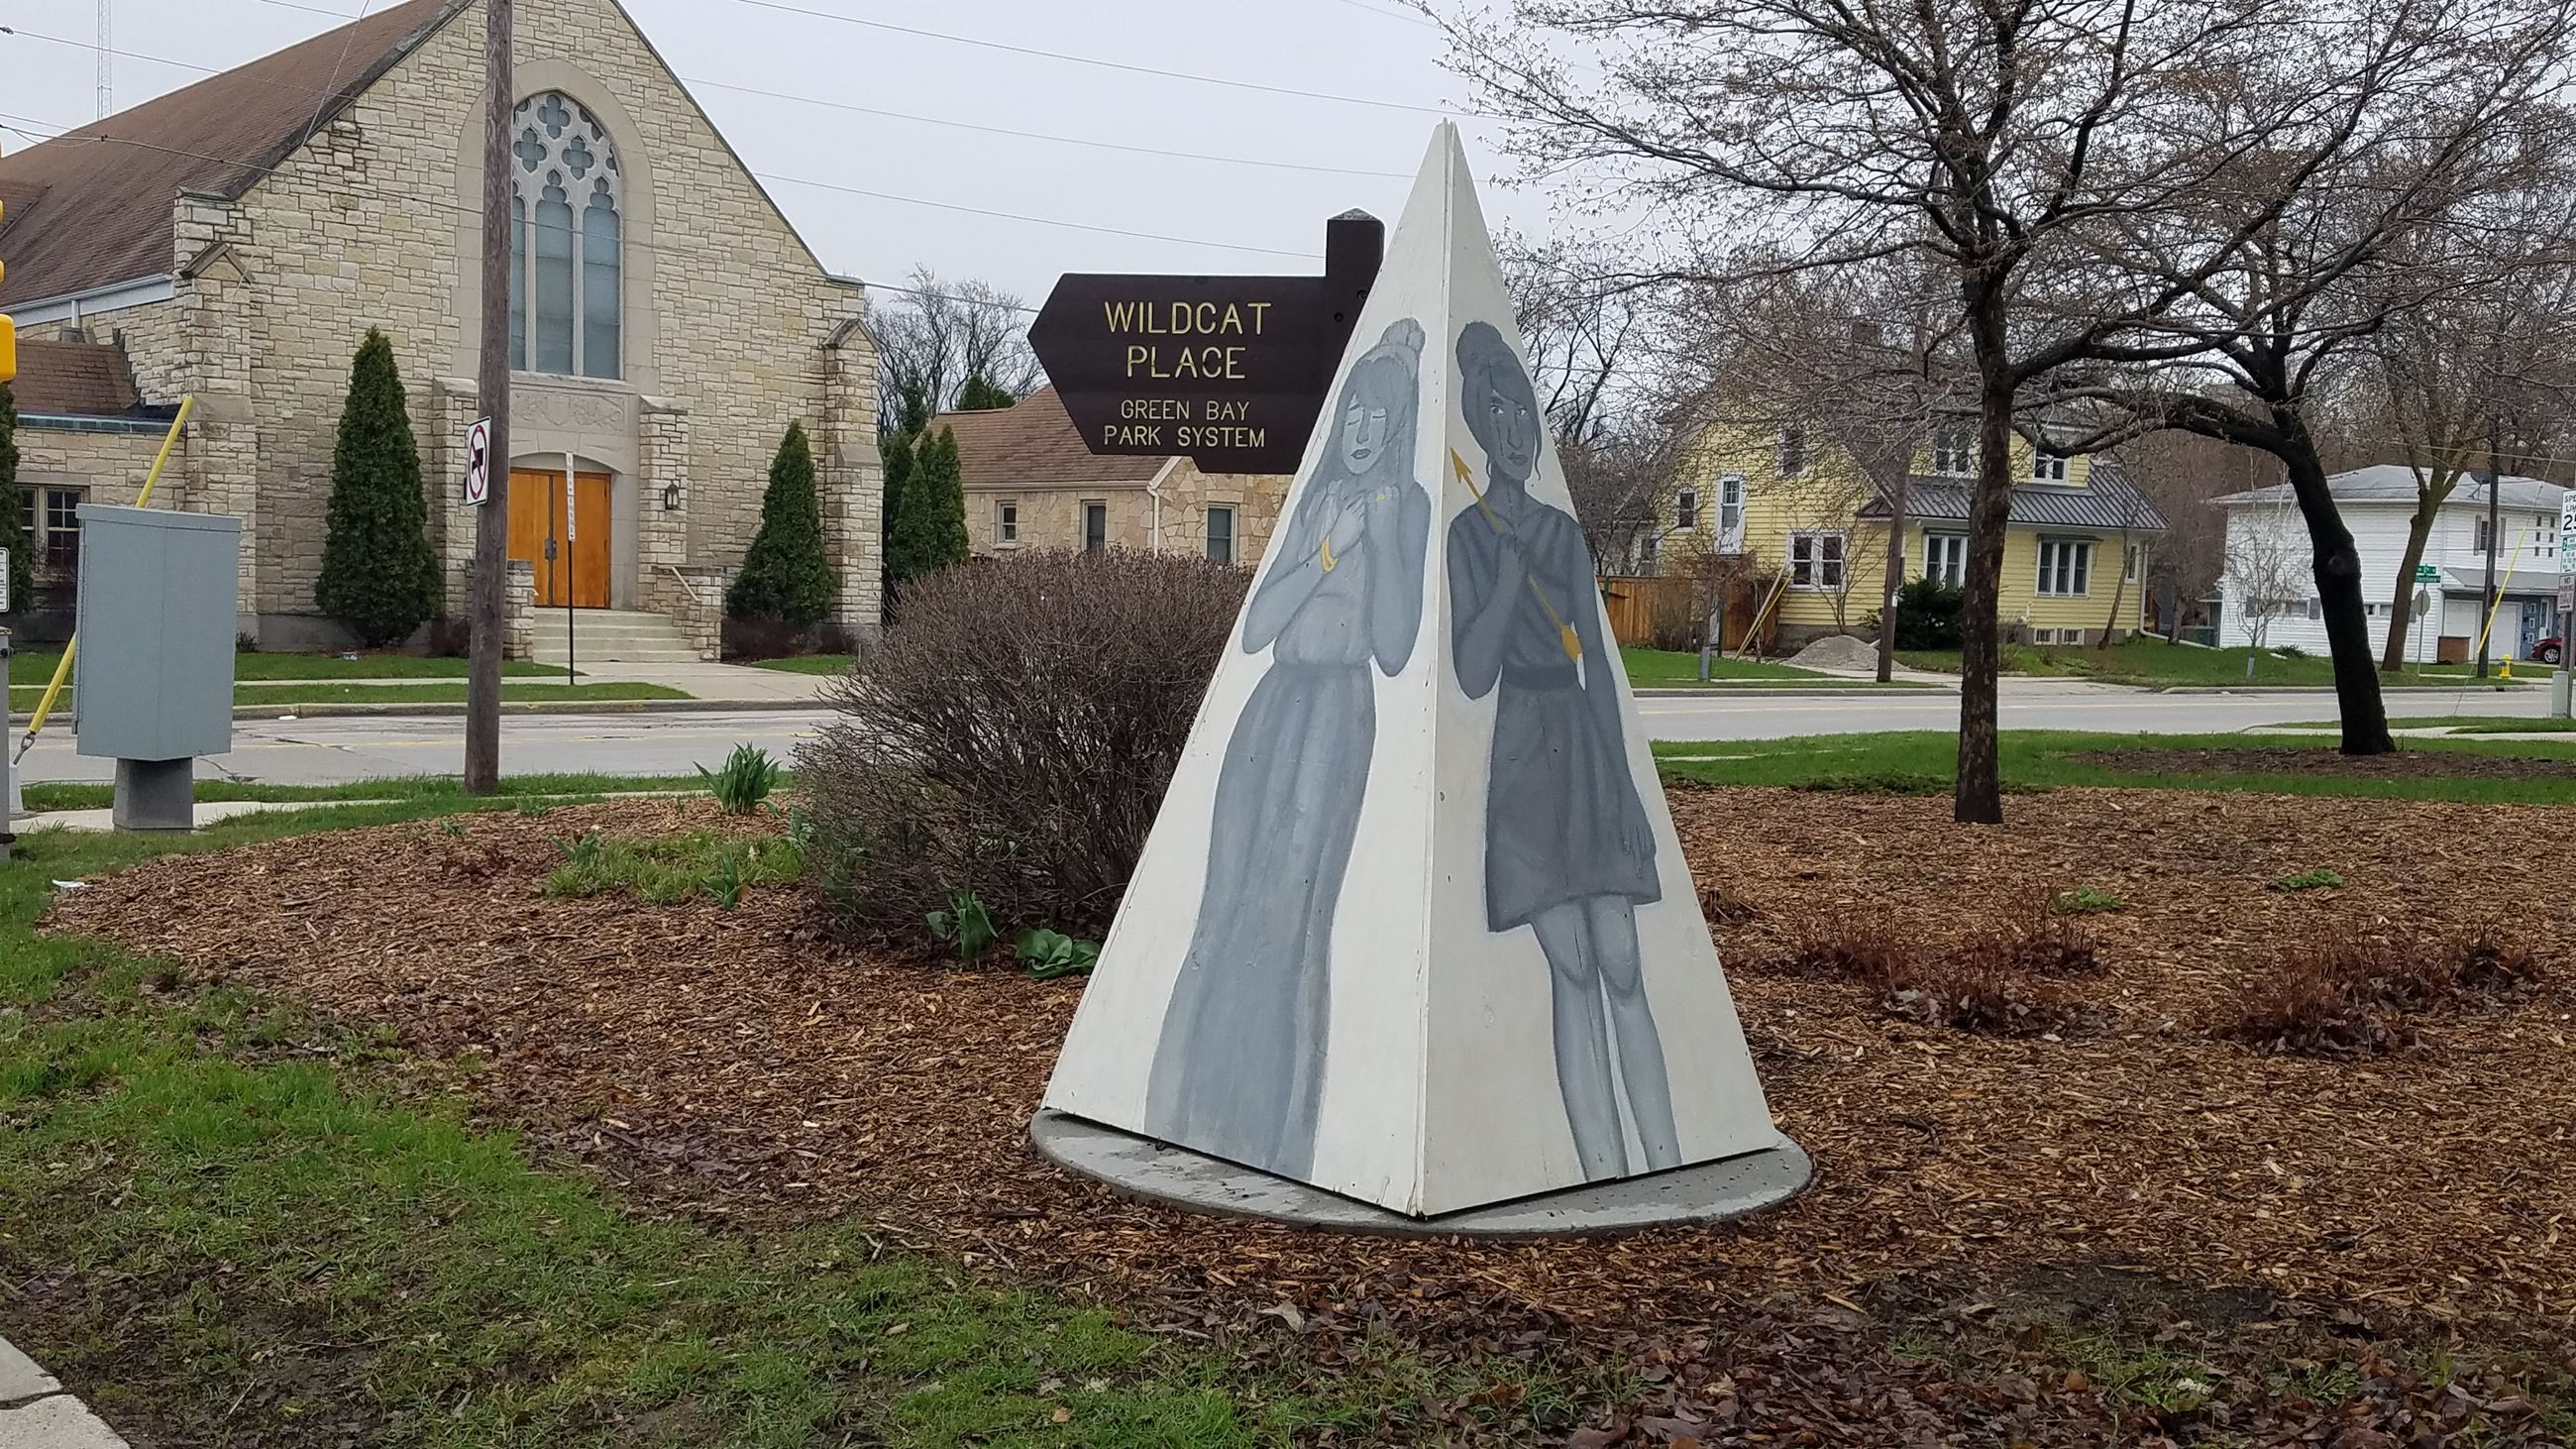 Painted pyramid sculpture depicting Greek goddesses by Kira Dampier